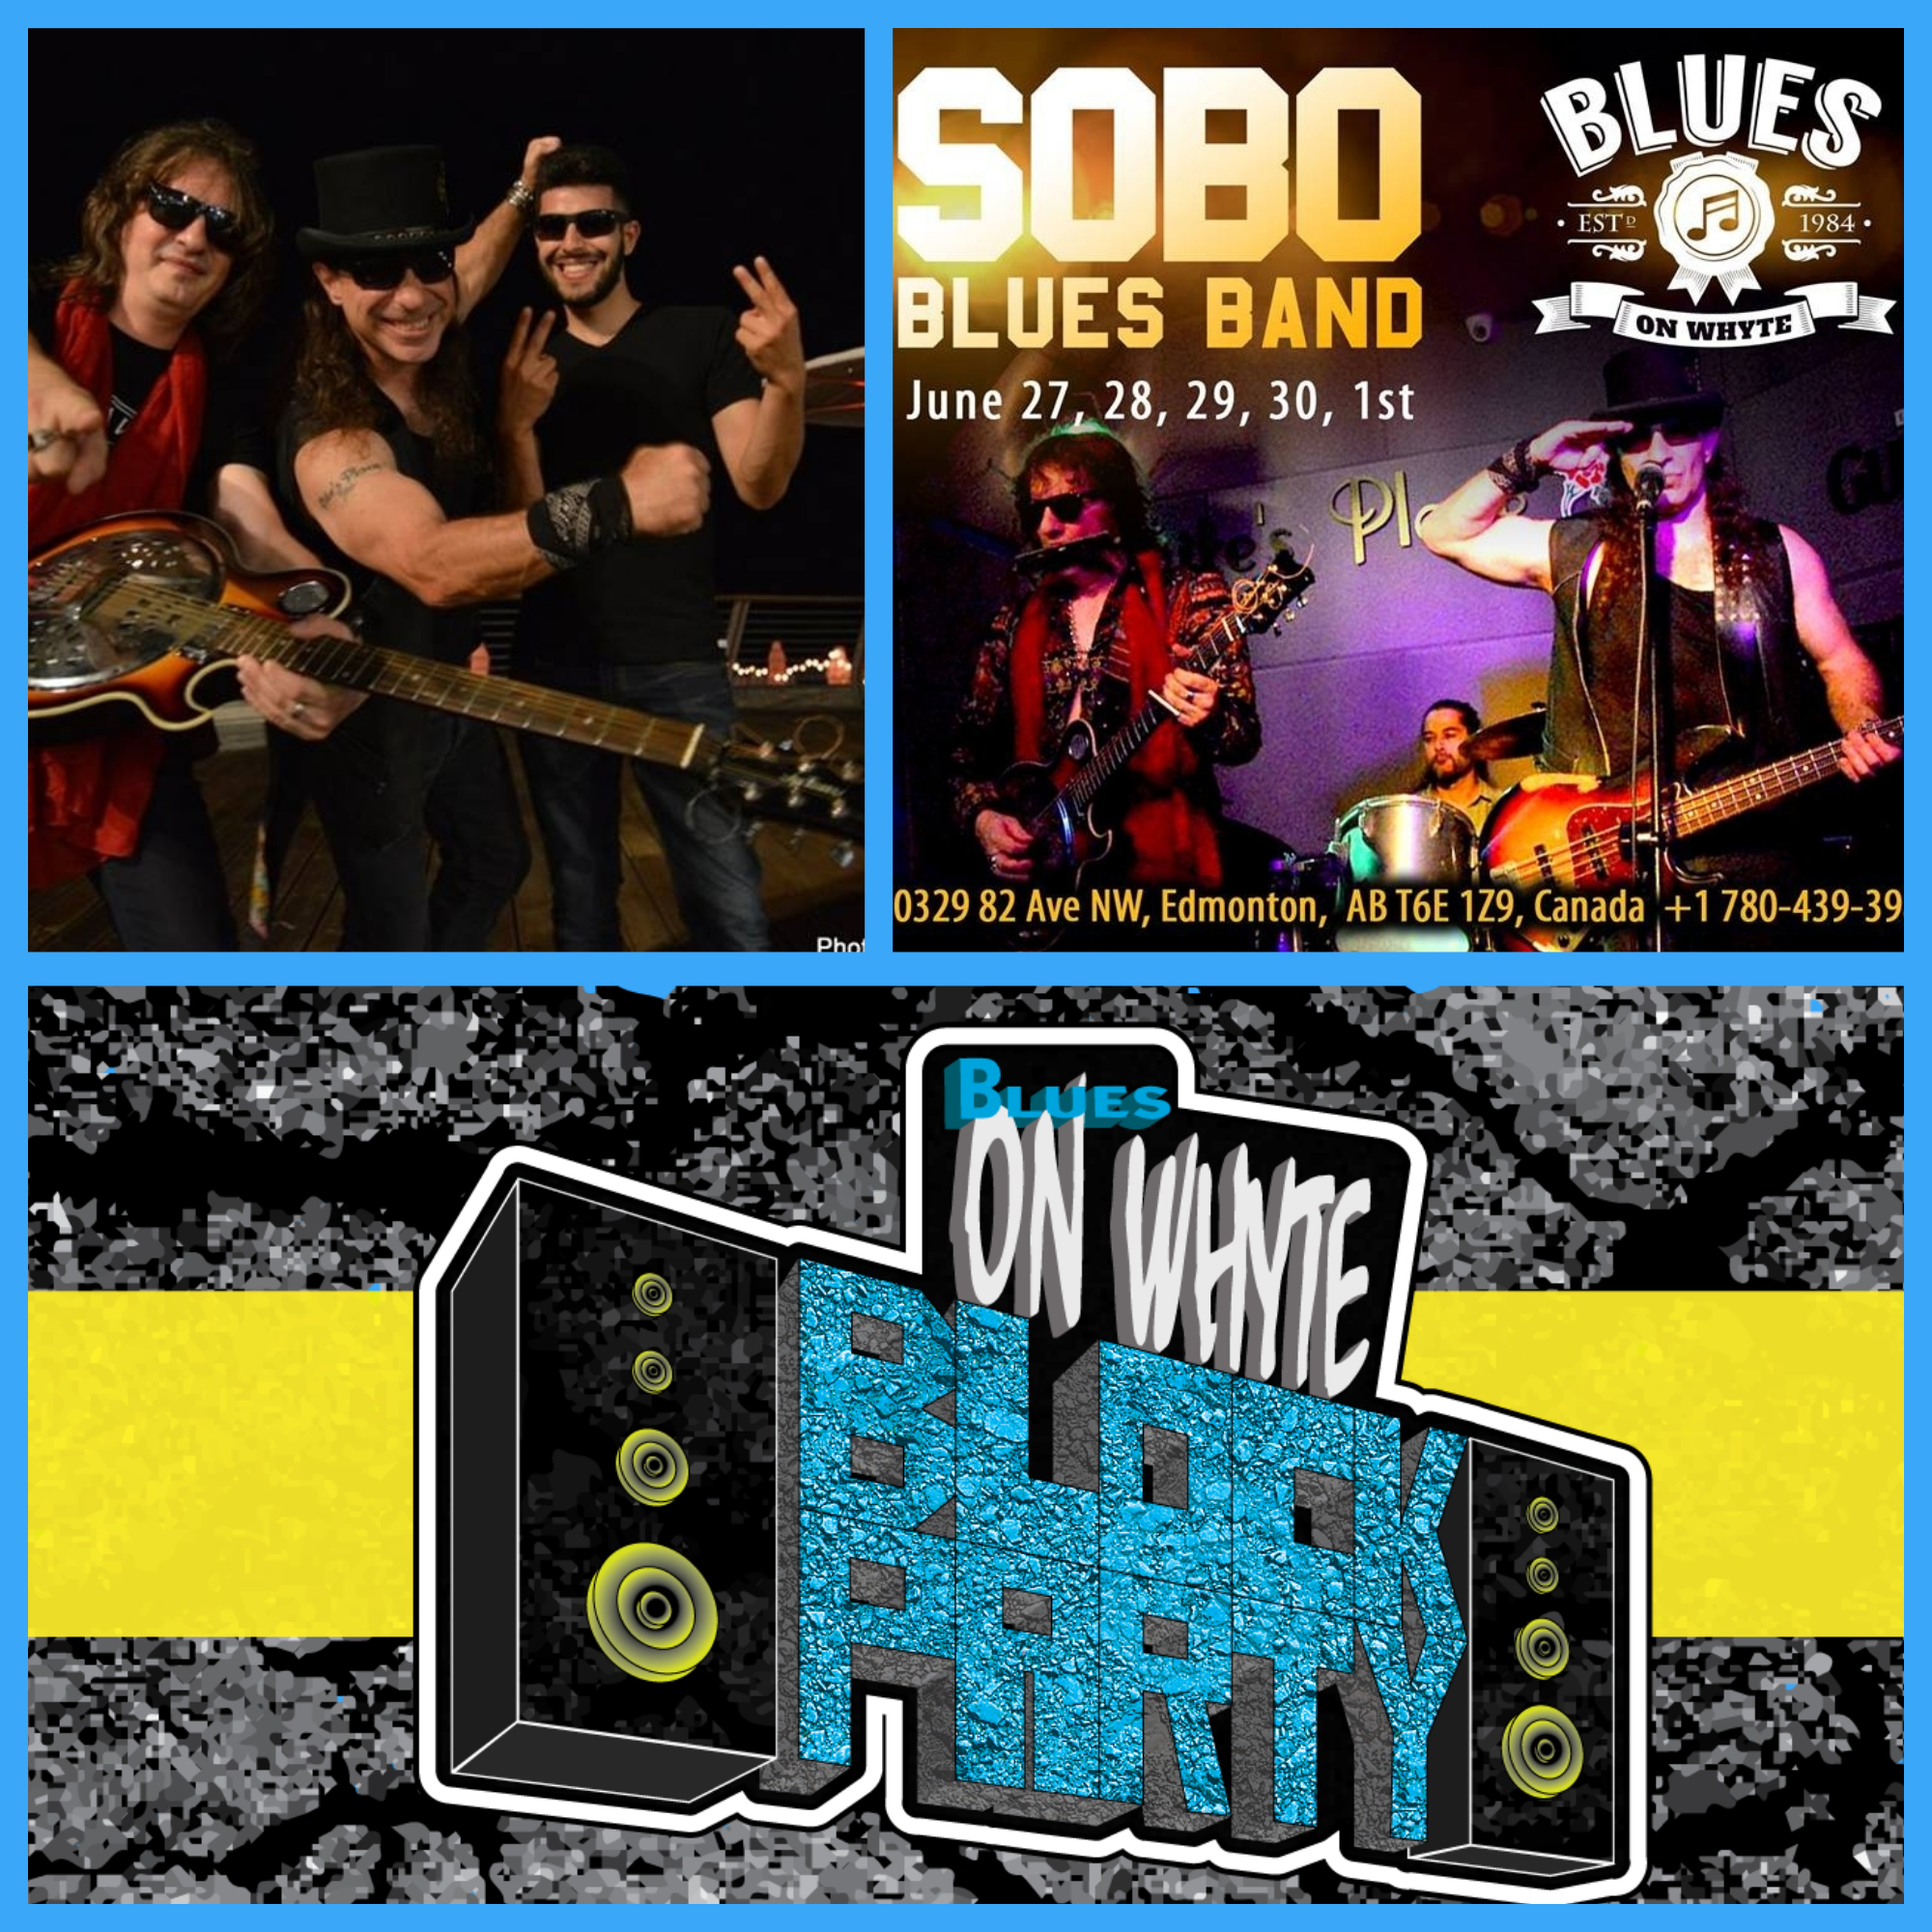 SOBO is an International rock-n-blues band integrating American, Russian and Middle Eastern influences. Based in the Holy City of Jerusalem. SOBO is legendary in Israel for its powerful and energetic mix of blues, rock, R&B and funk coupled with a unique sound of slide guitar. SOBO does their own original songs which have a bluesy flavor, and is constantly working to produce more.